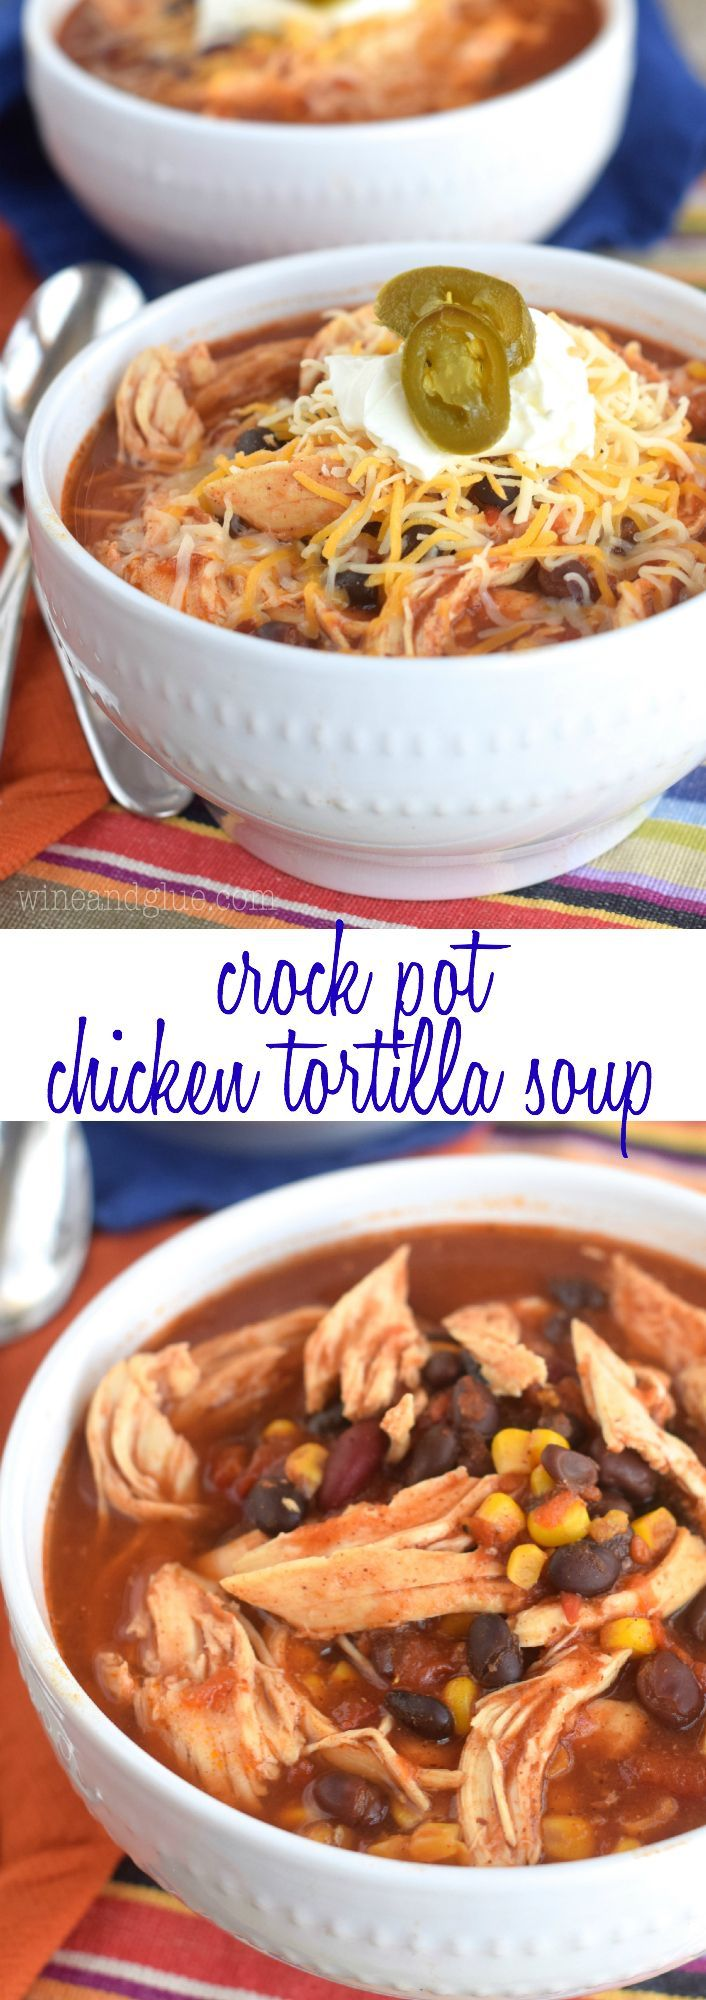 This Crock Pot Chicken Tortilla Soup | Five minutes prep and less than 300 calories a bowl!